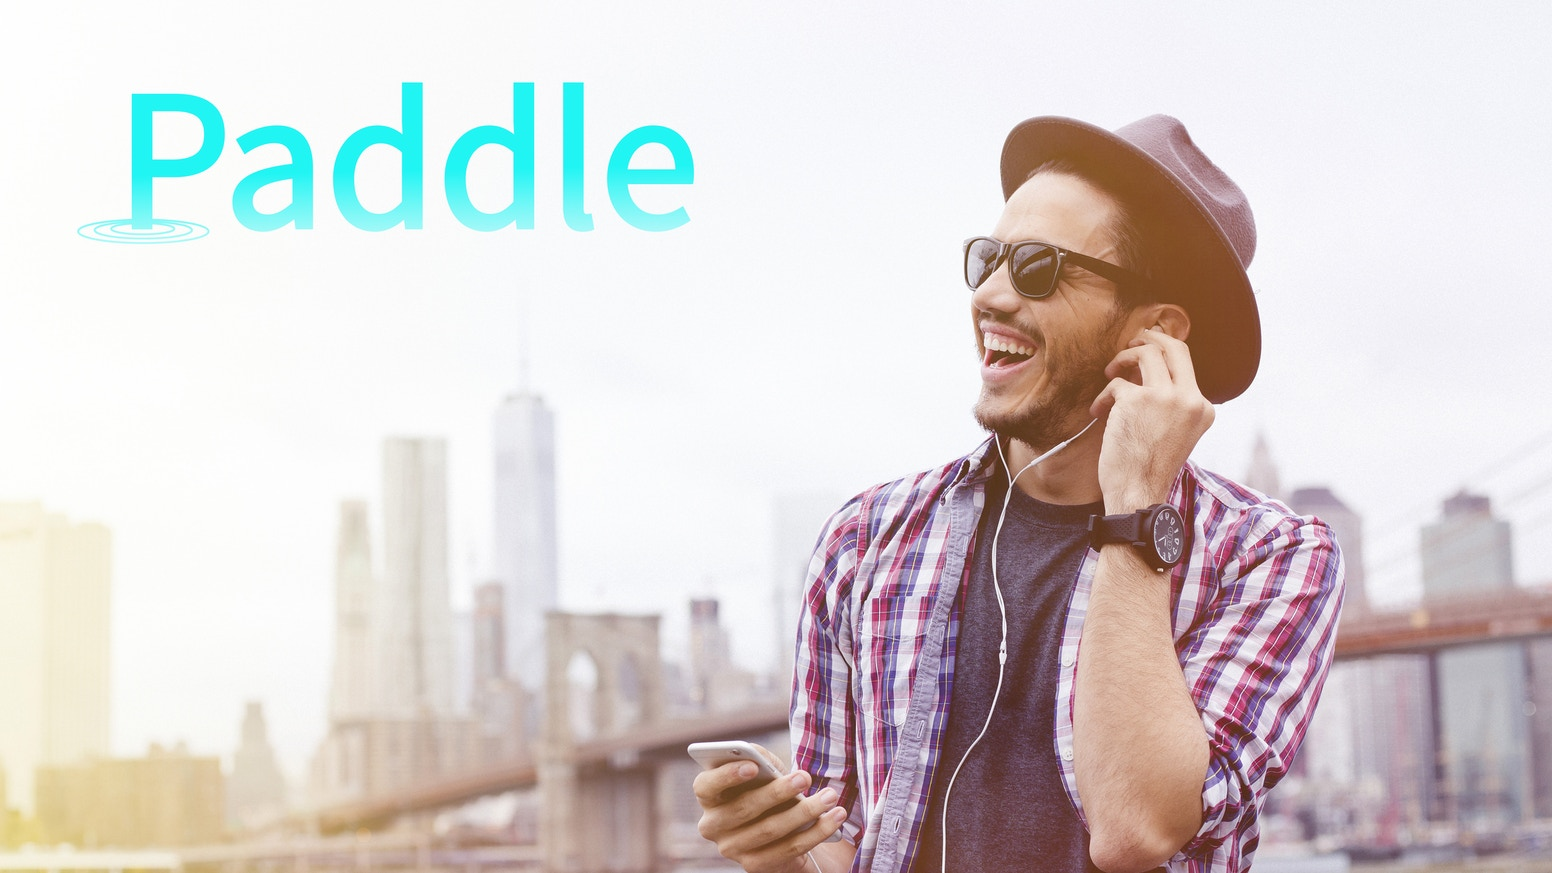 Spotify is for discovering music. Paddle is for sharing the music you discover.